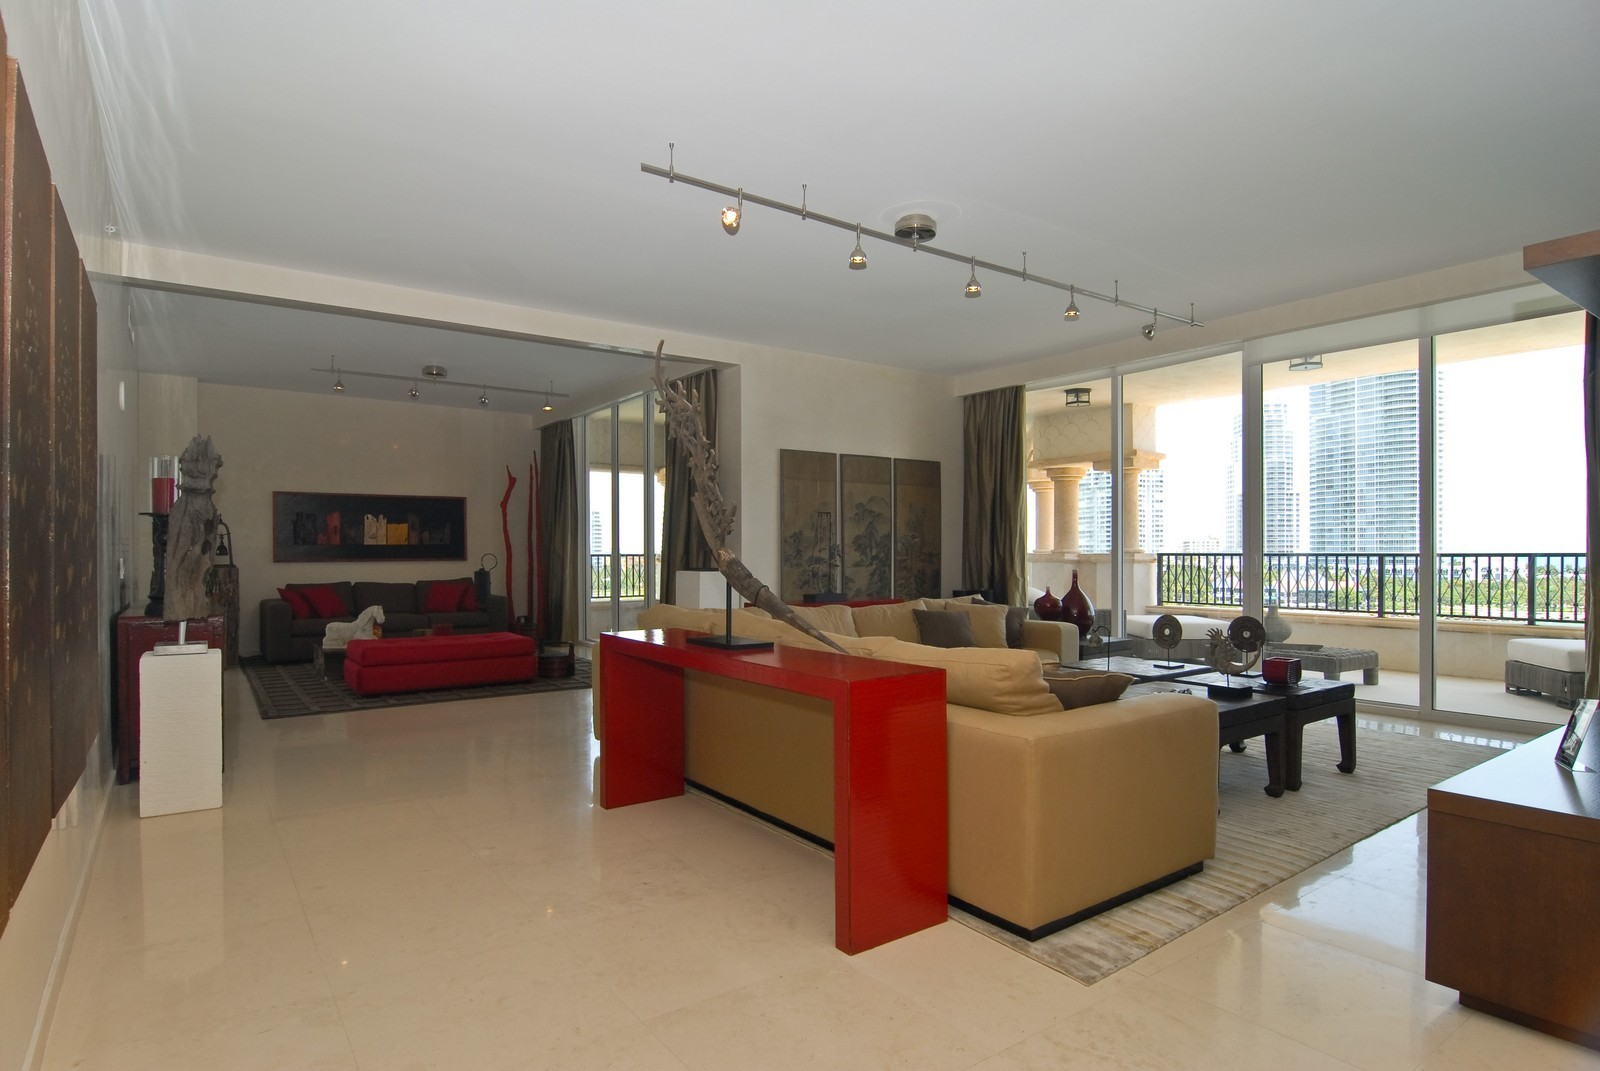 Real Estate Photography - 7161 Fisher Island Drive, Miami Beach, FL, 33109 - Living Rm/Family Rm